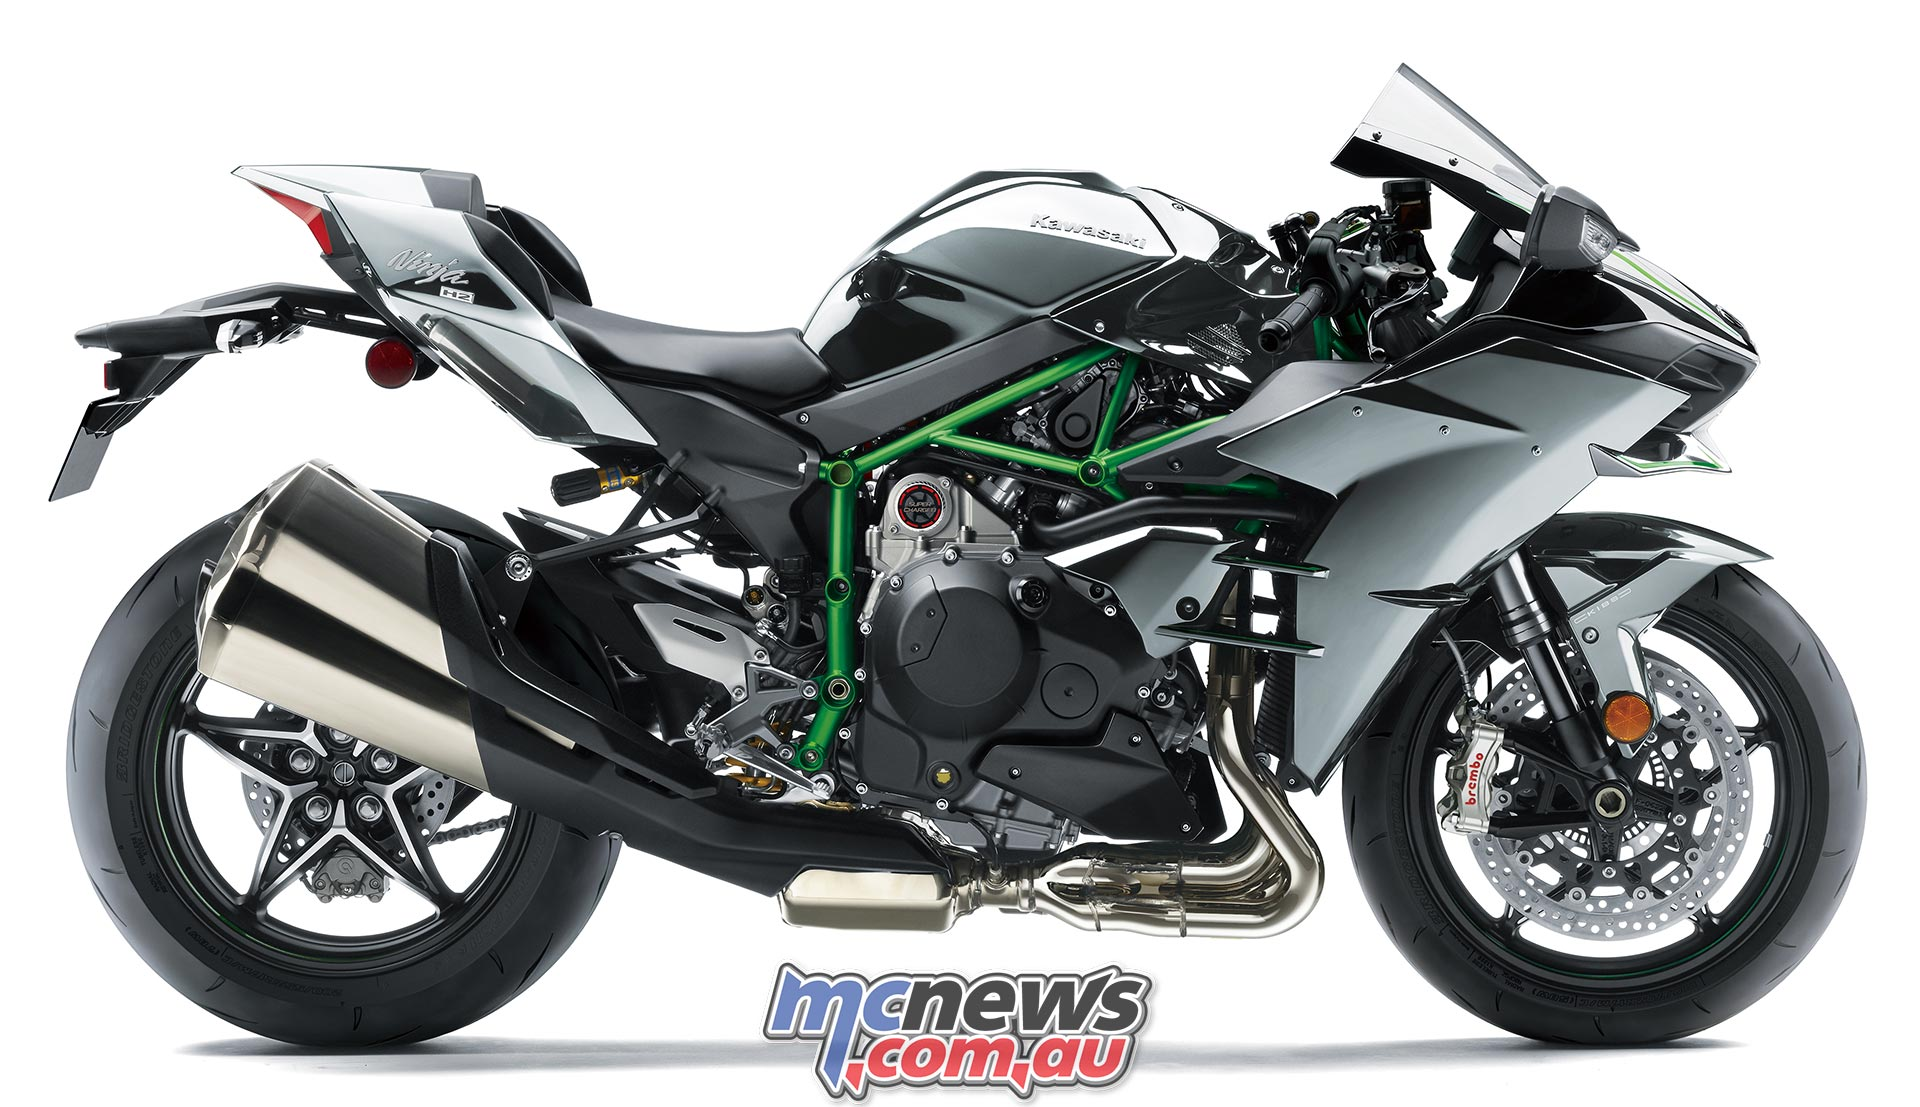 A Motogp Bike Going Head To Head With A Kawasaki H2r Mcnewscomau